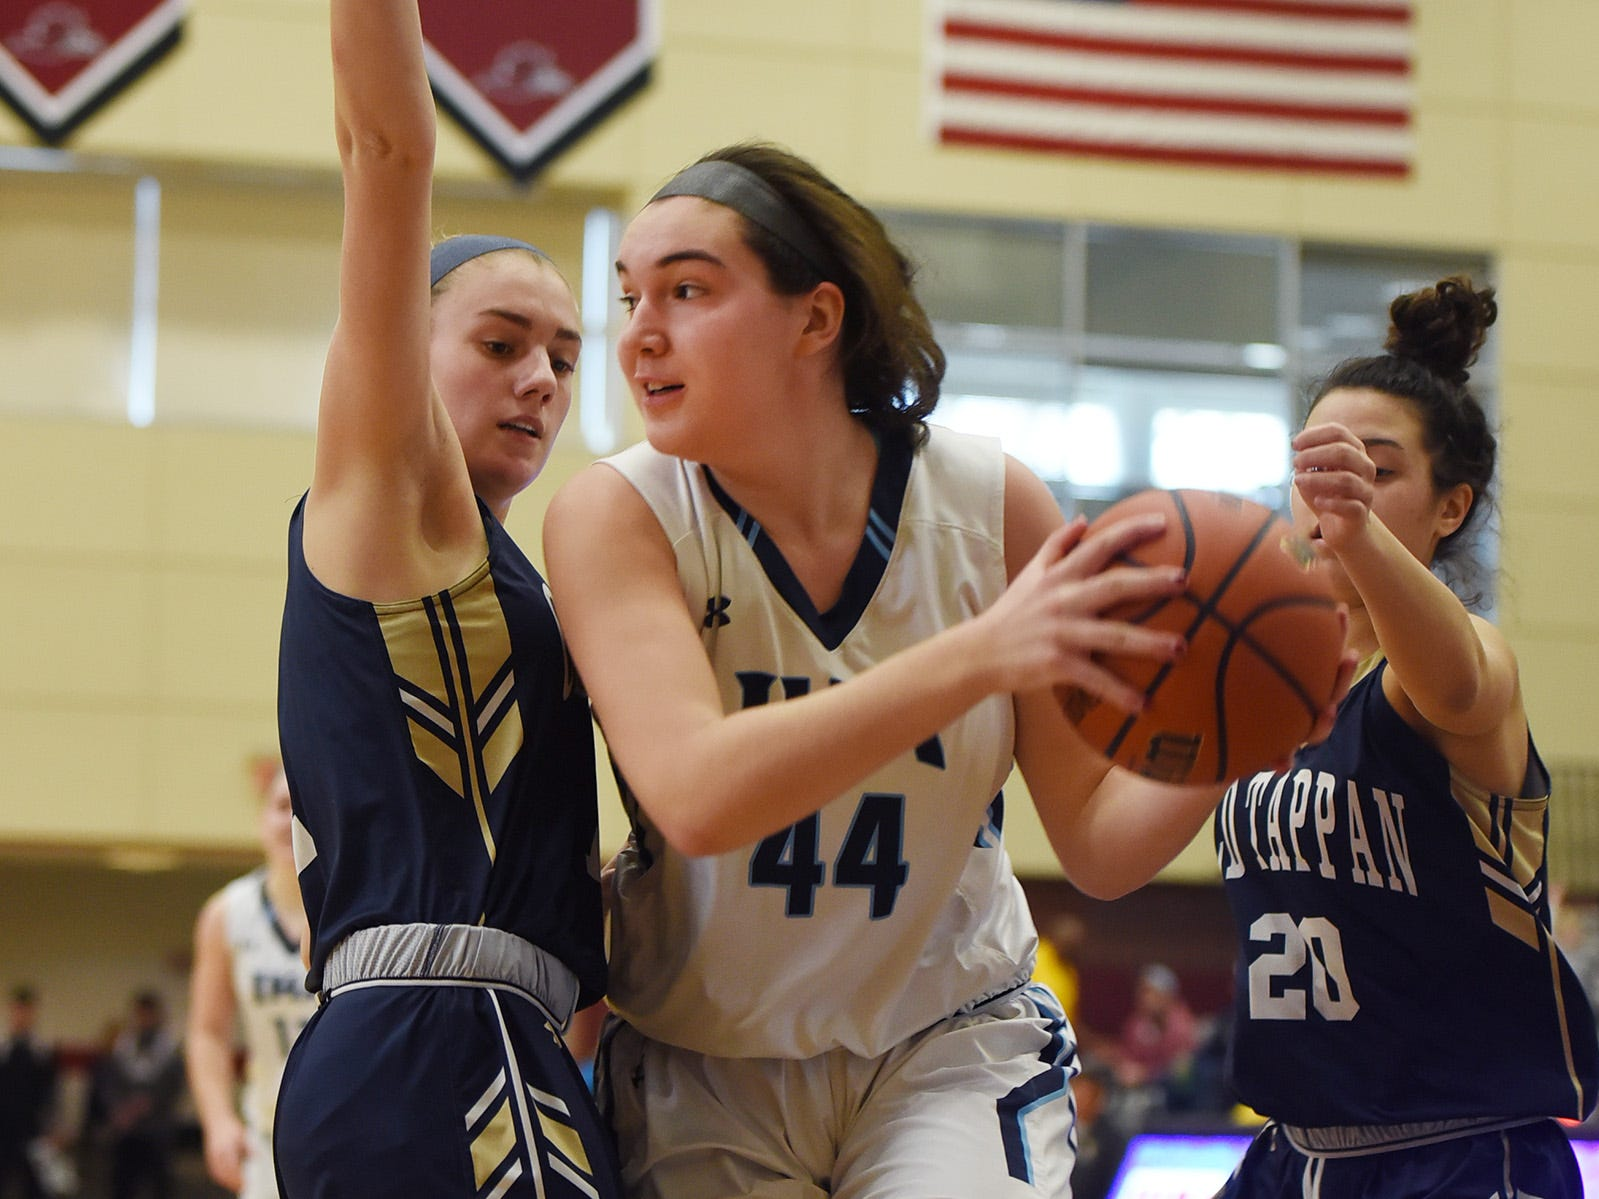 Emma Matesic (no. 44) of Immaculate Heart looks for an opening against NV/Old Tappan in the second half during the 2019 Bergen County girls basketball championship semifinal at Ramapo College in Mahwah on 02/10/19.